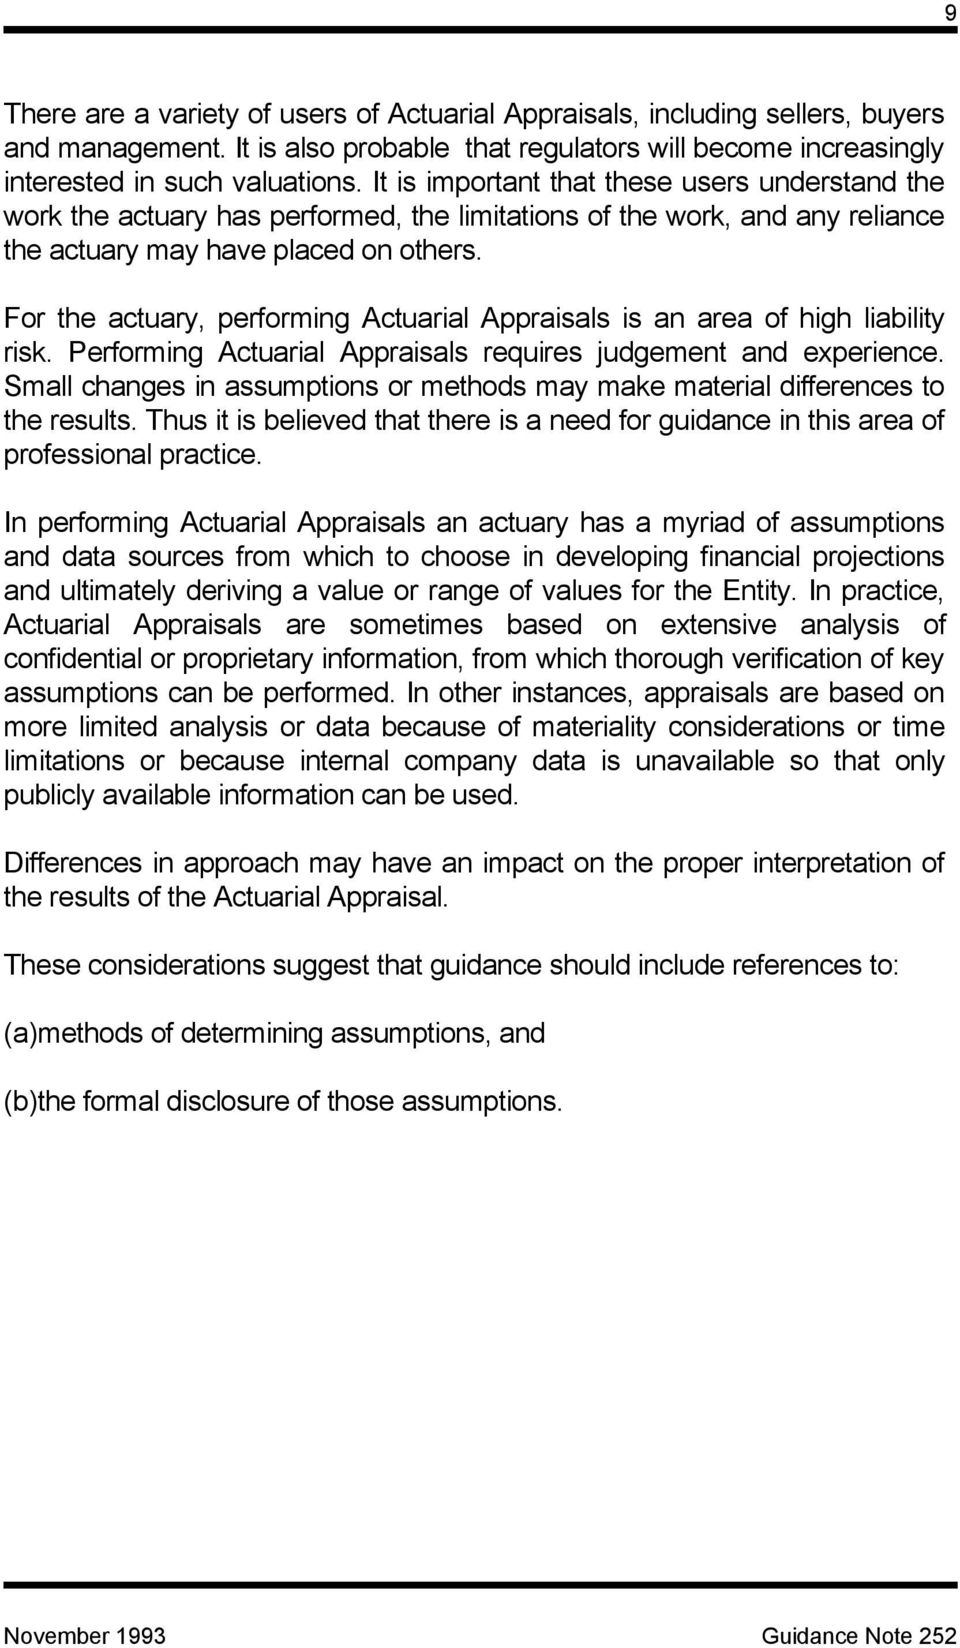 For the actuary, performing Actuarial Appraisals is an area of high liability risk. Performing Actuarial Appraisals requires judgement and experience.